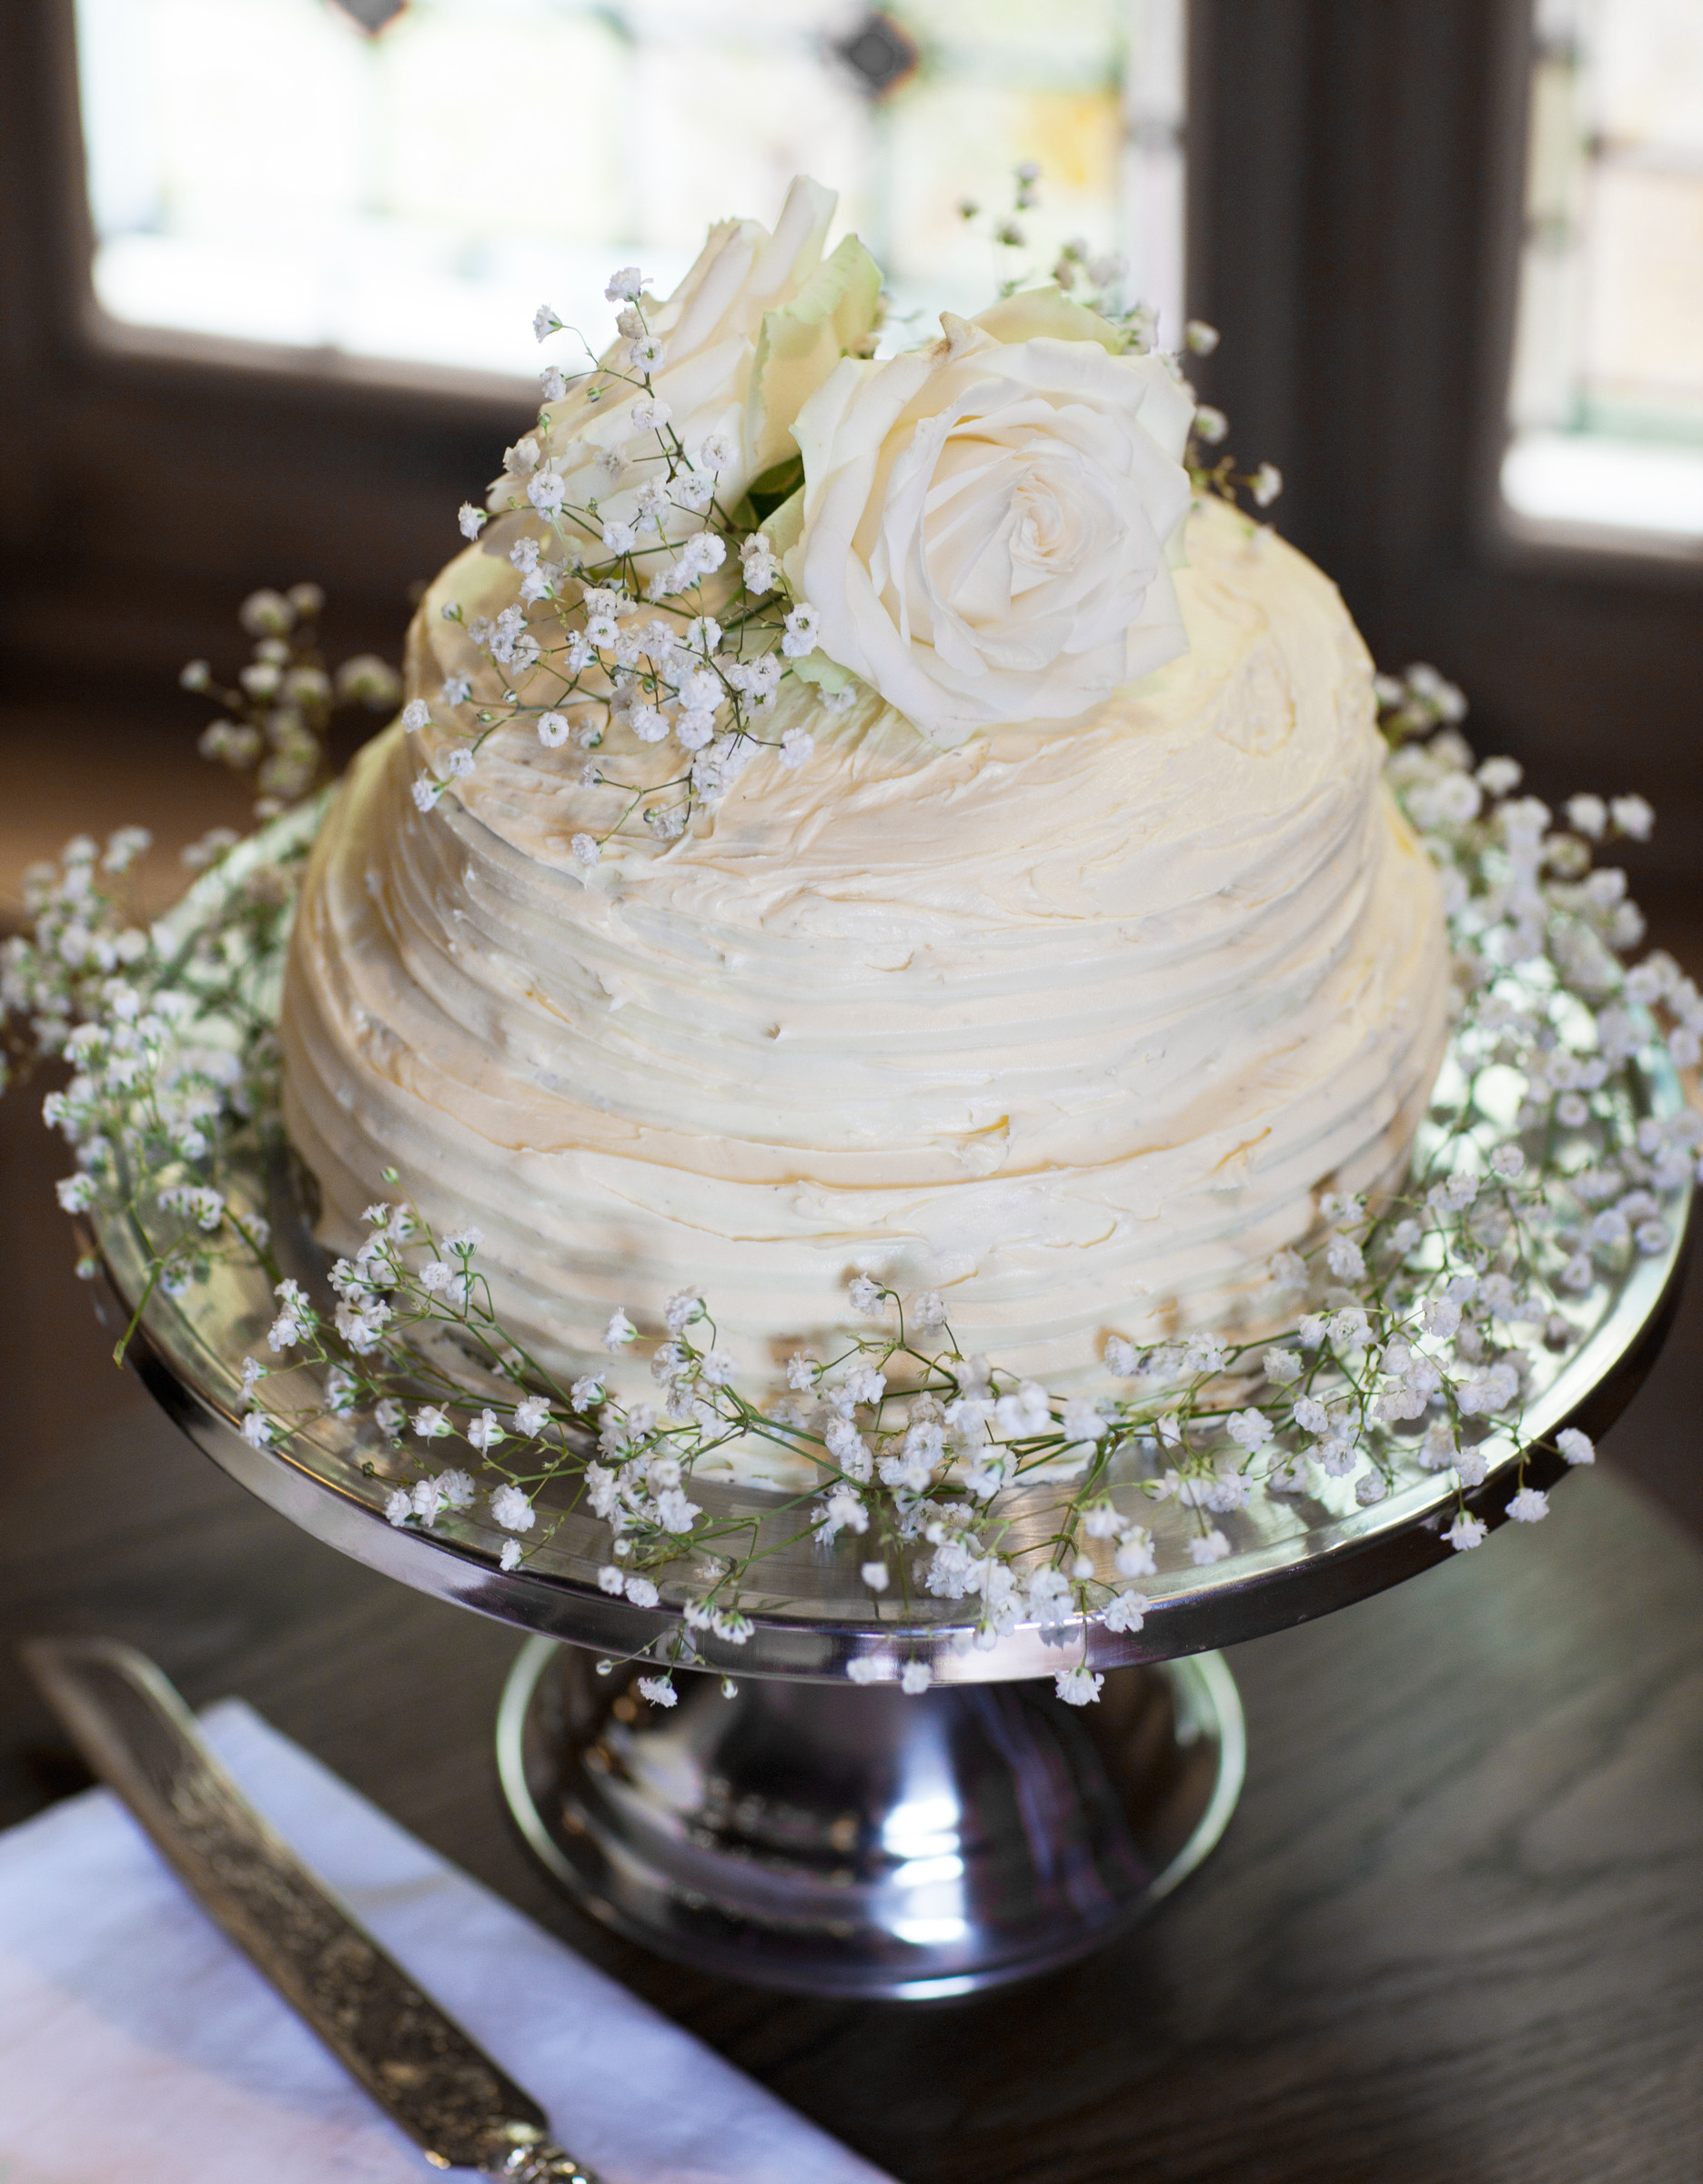 Best ideas about DIY Wedding Cakes . Save or Pin DIY Wedding How to make your own wedding cake Now.